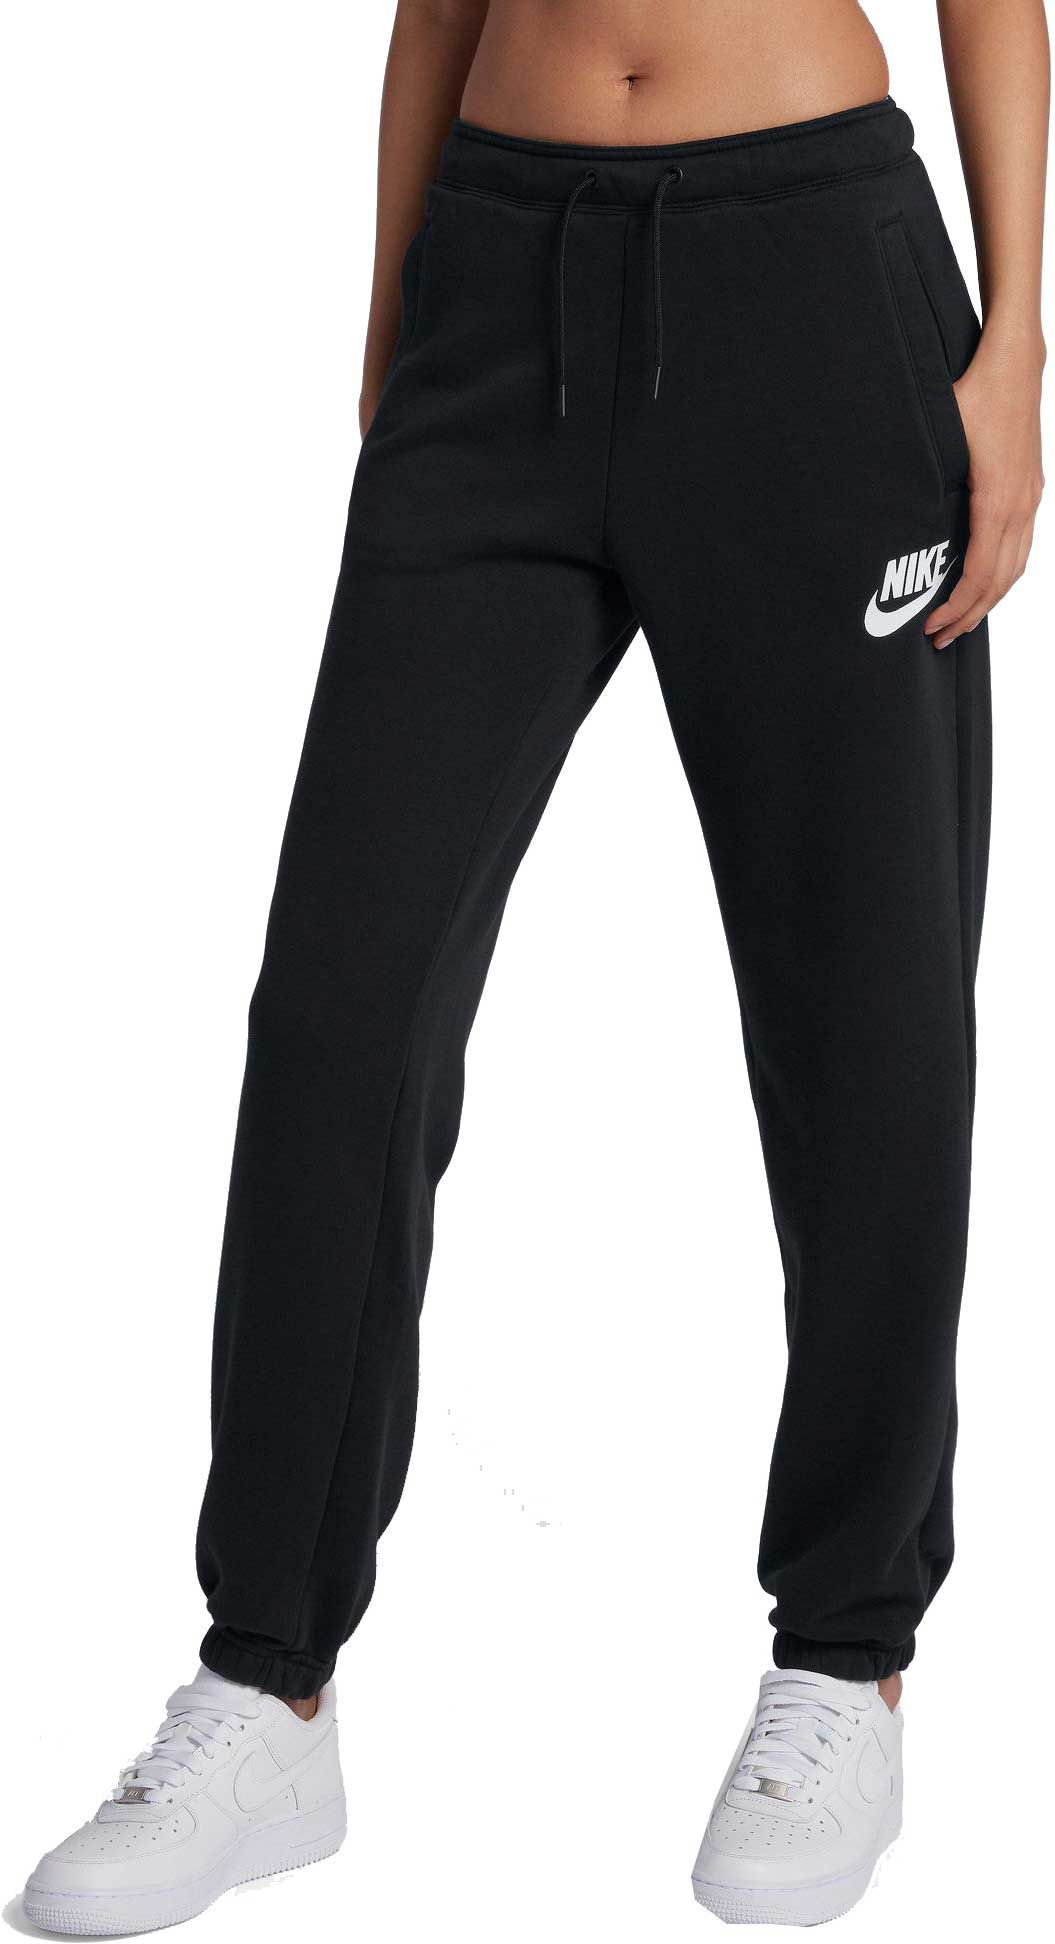 4cd861c49a Nike Women's Sportswear Loose Rally Sweatpants, Size: Large, Black ...